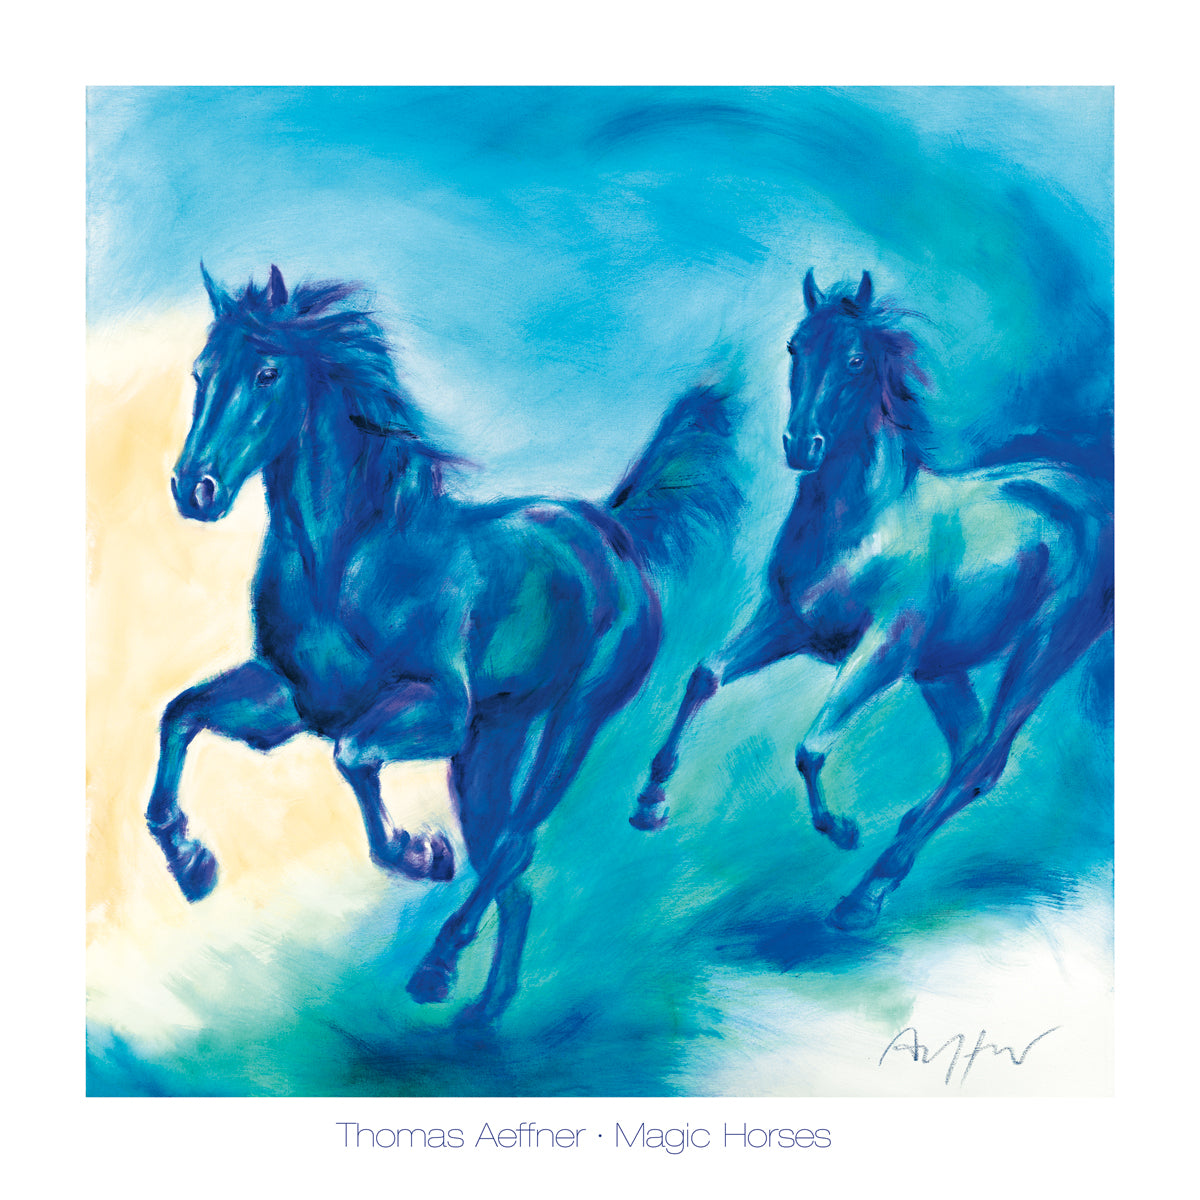 Thomas Aeffner - Magic Horses